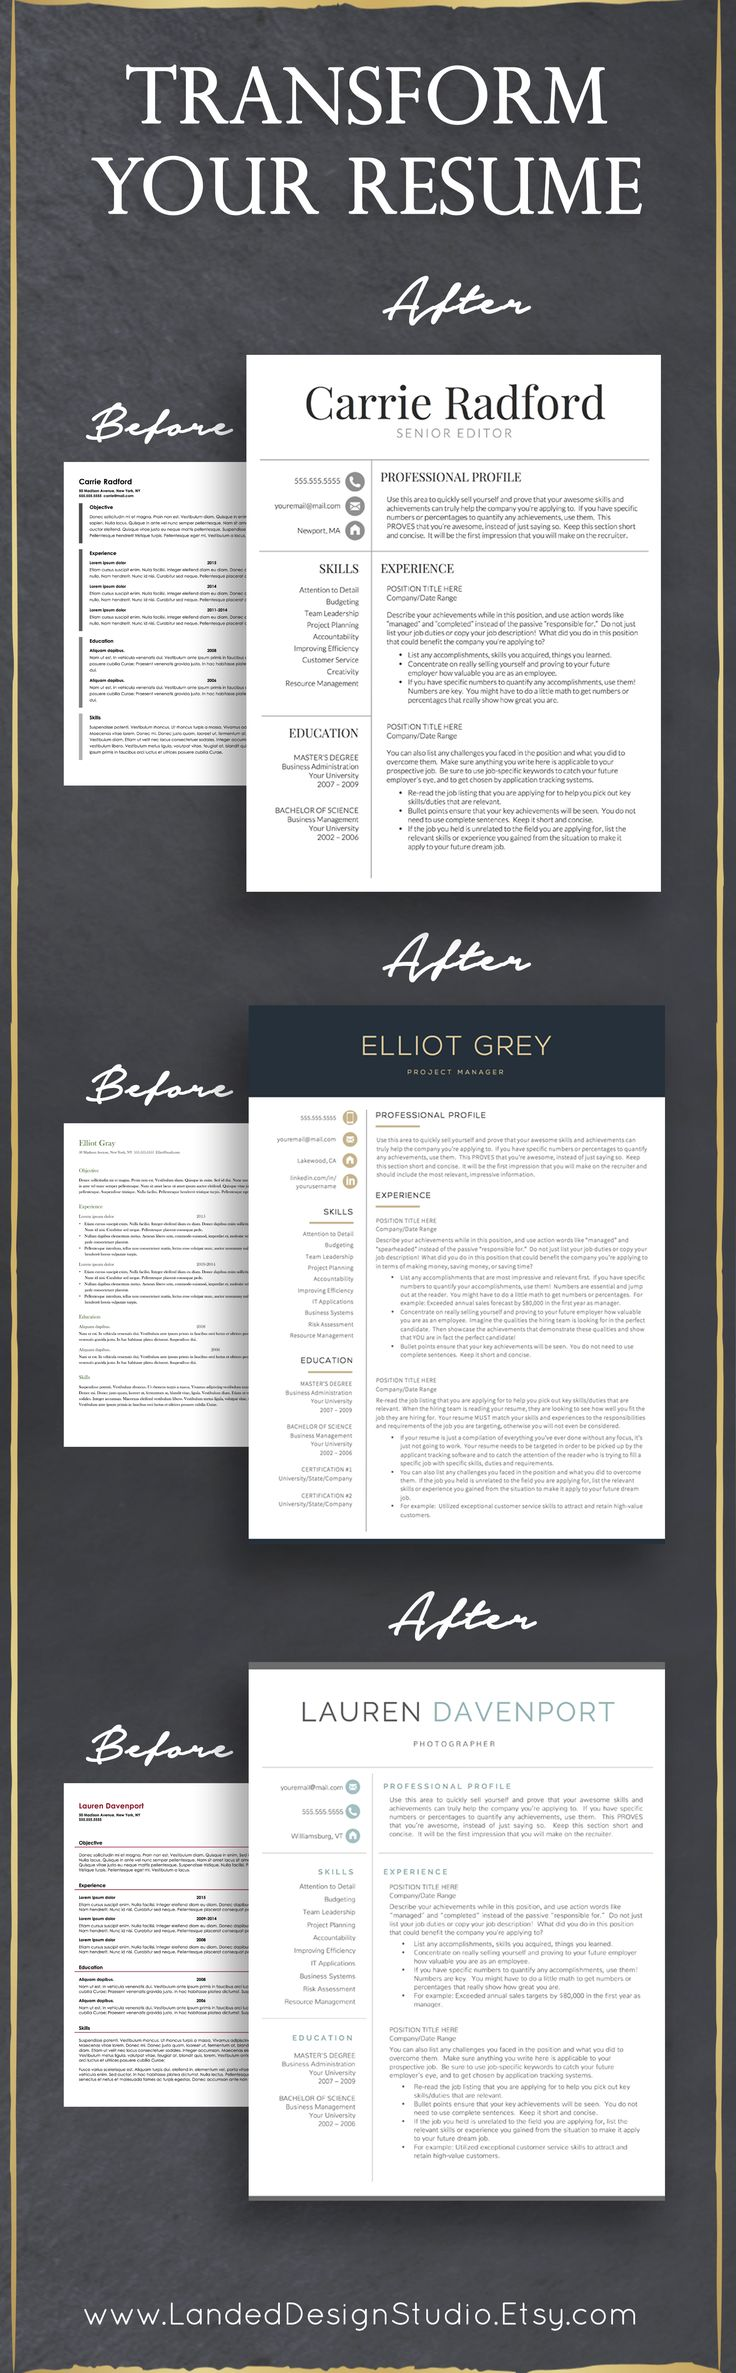 completely transform your resume with a professional resume template resume writing tips and resume advice